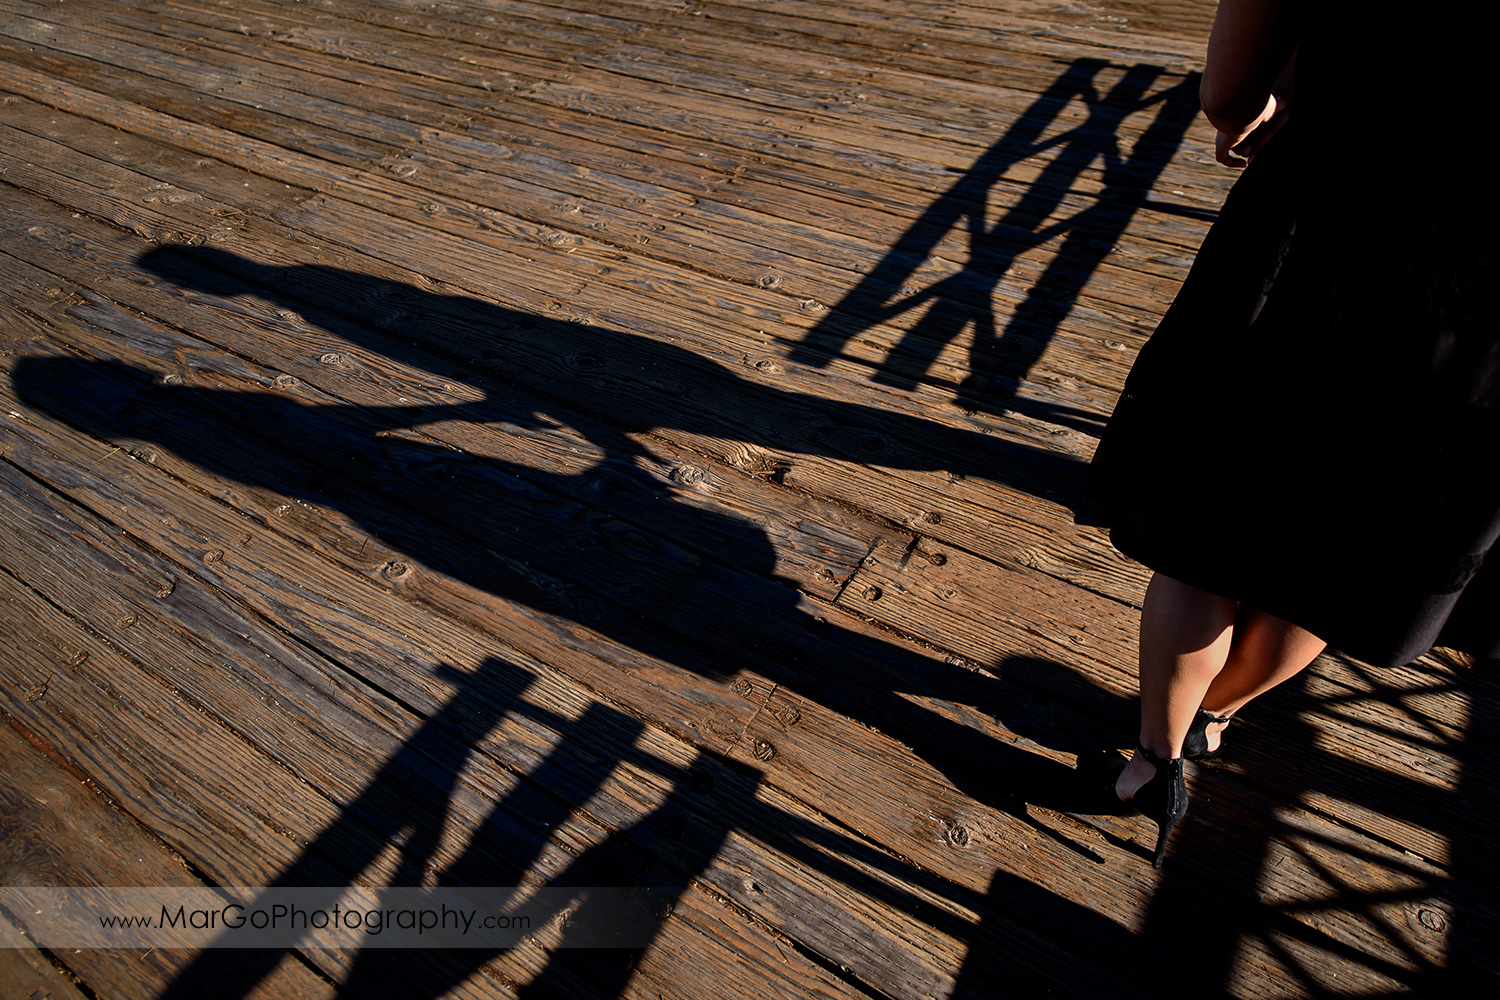 engagement session at Pier 7 in San Francisco - shadows of the couple